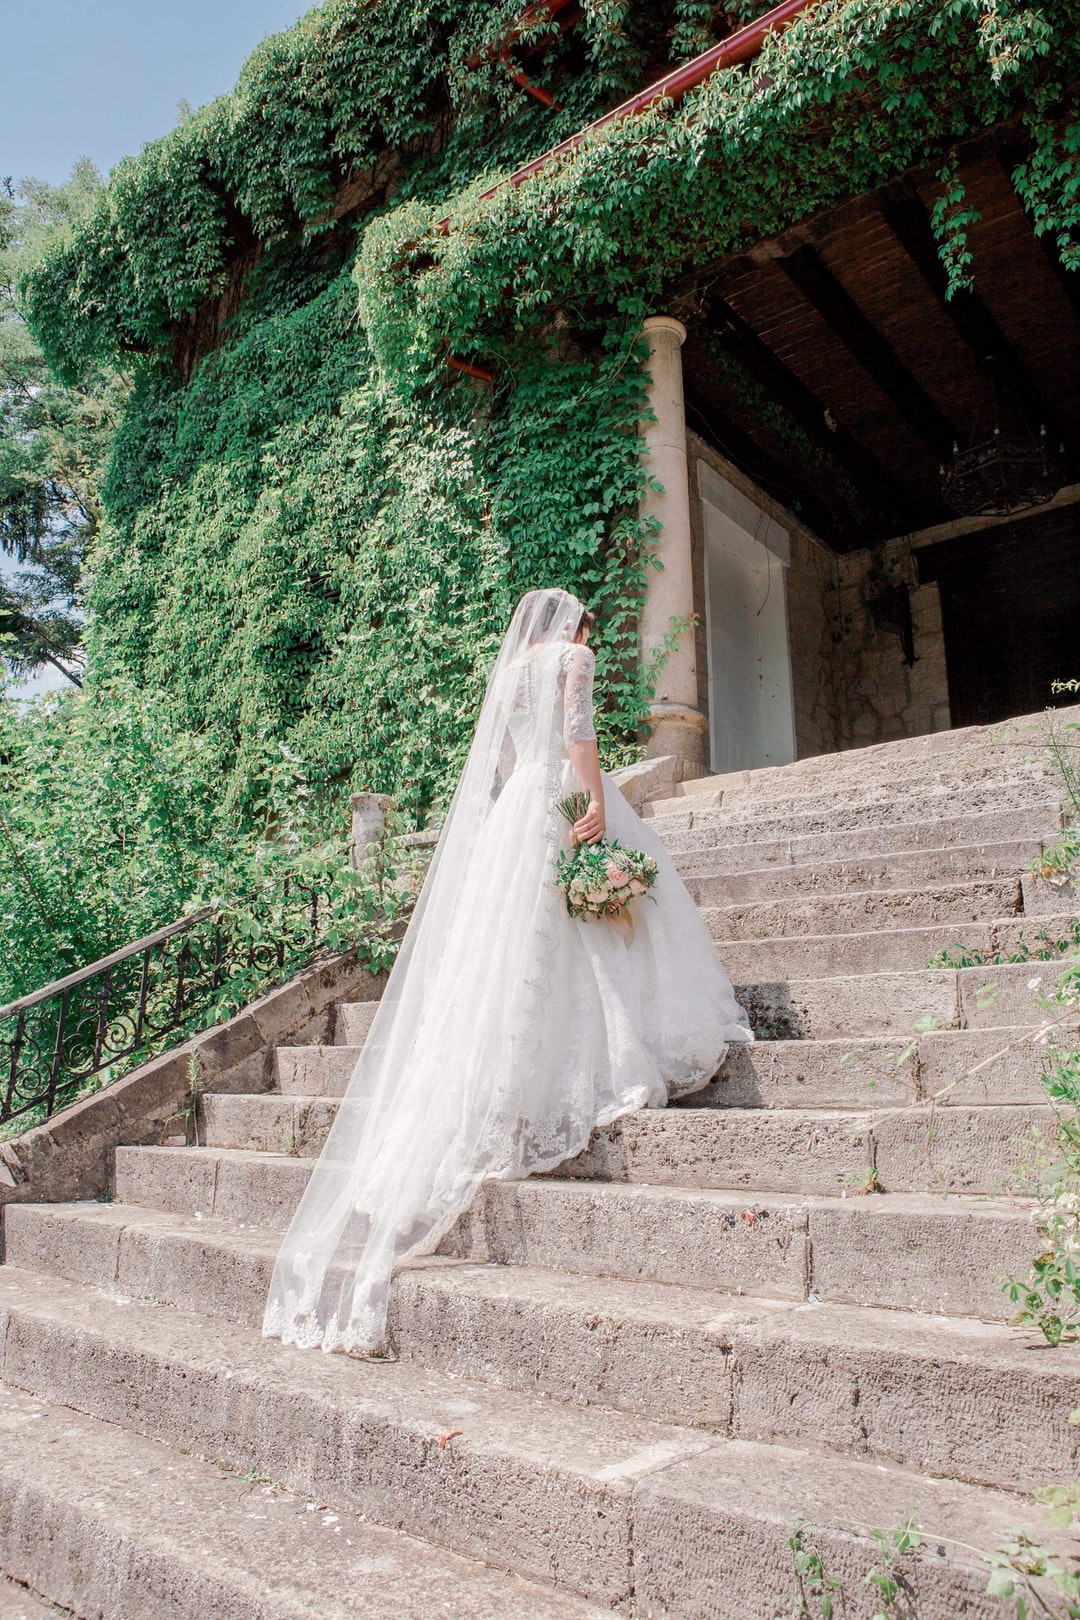 76570a14a64ab 100+ Wedding Dress Pictures | Download Free Images & Stock Photos on  Unsplash